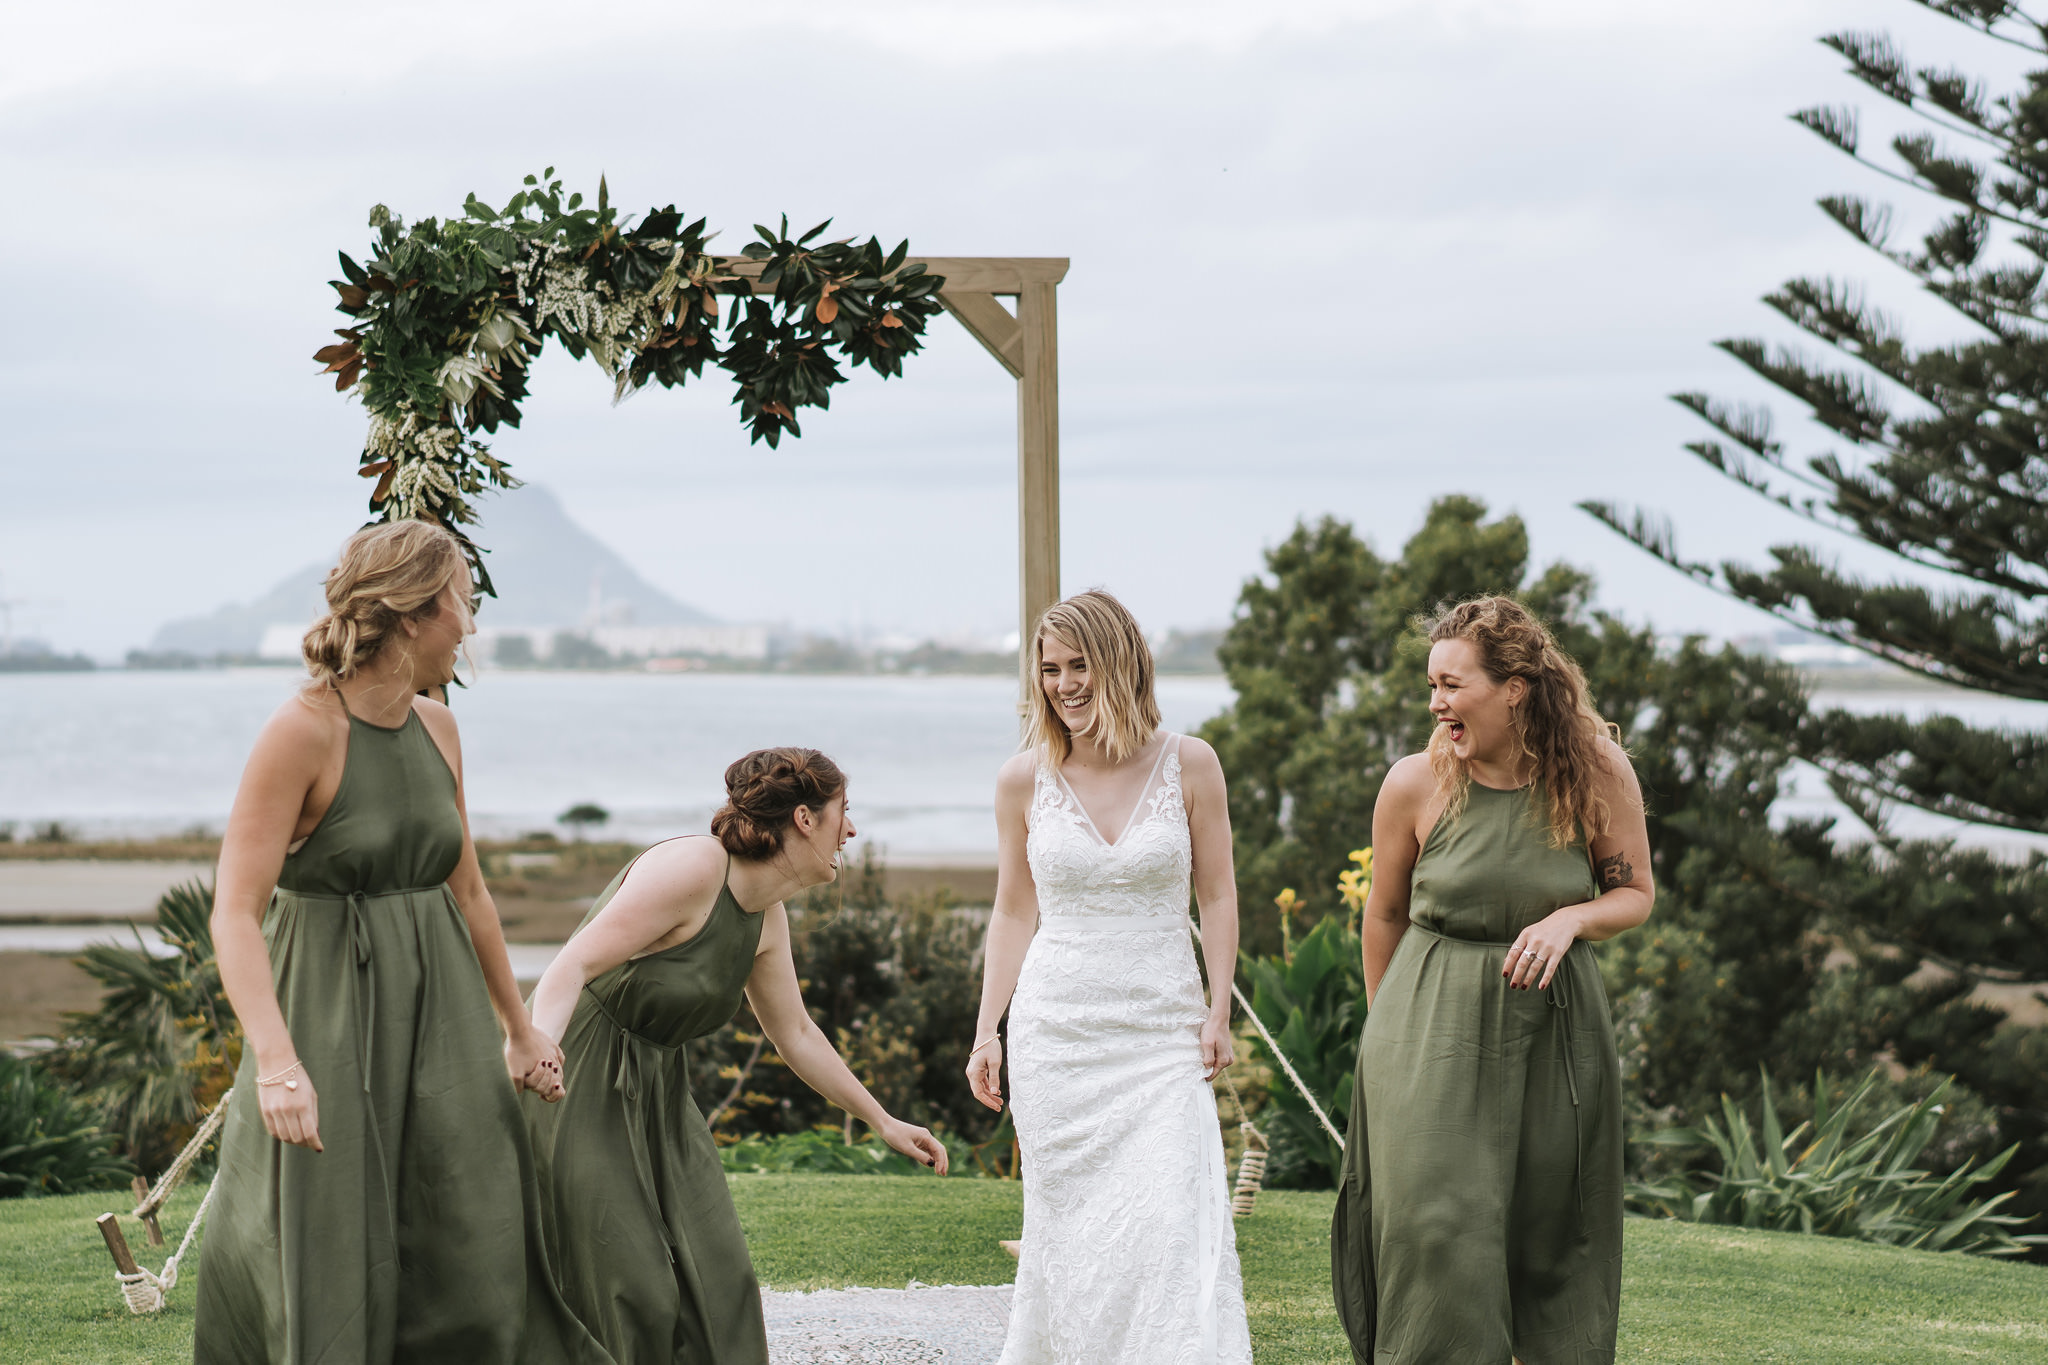 newfound-s-a-tauranga-new-zealand-wedding-photography-609